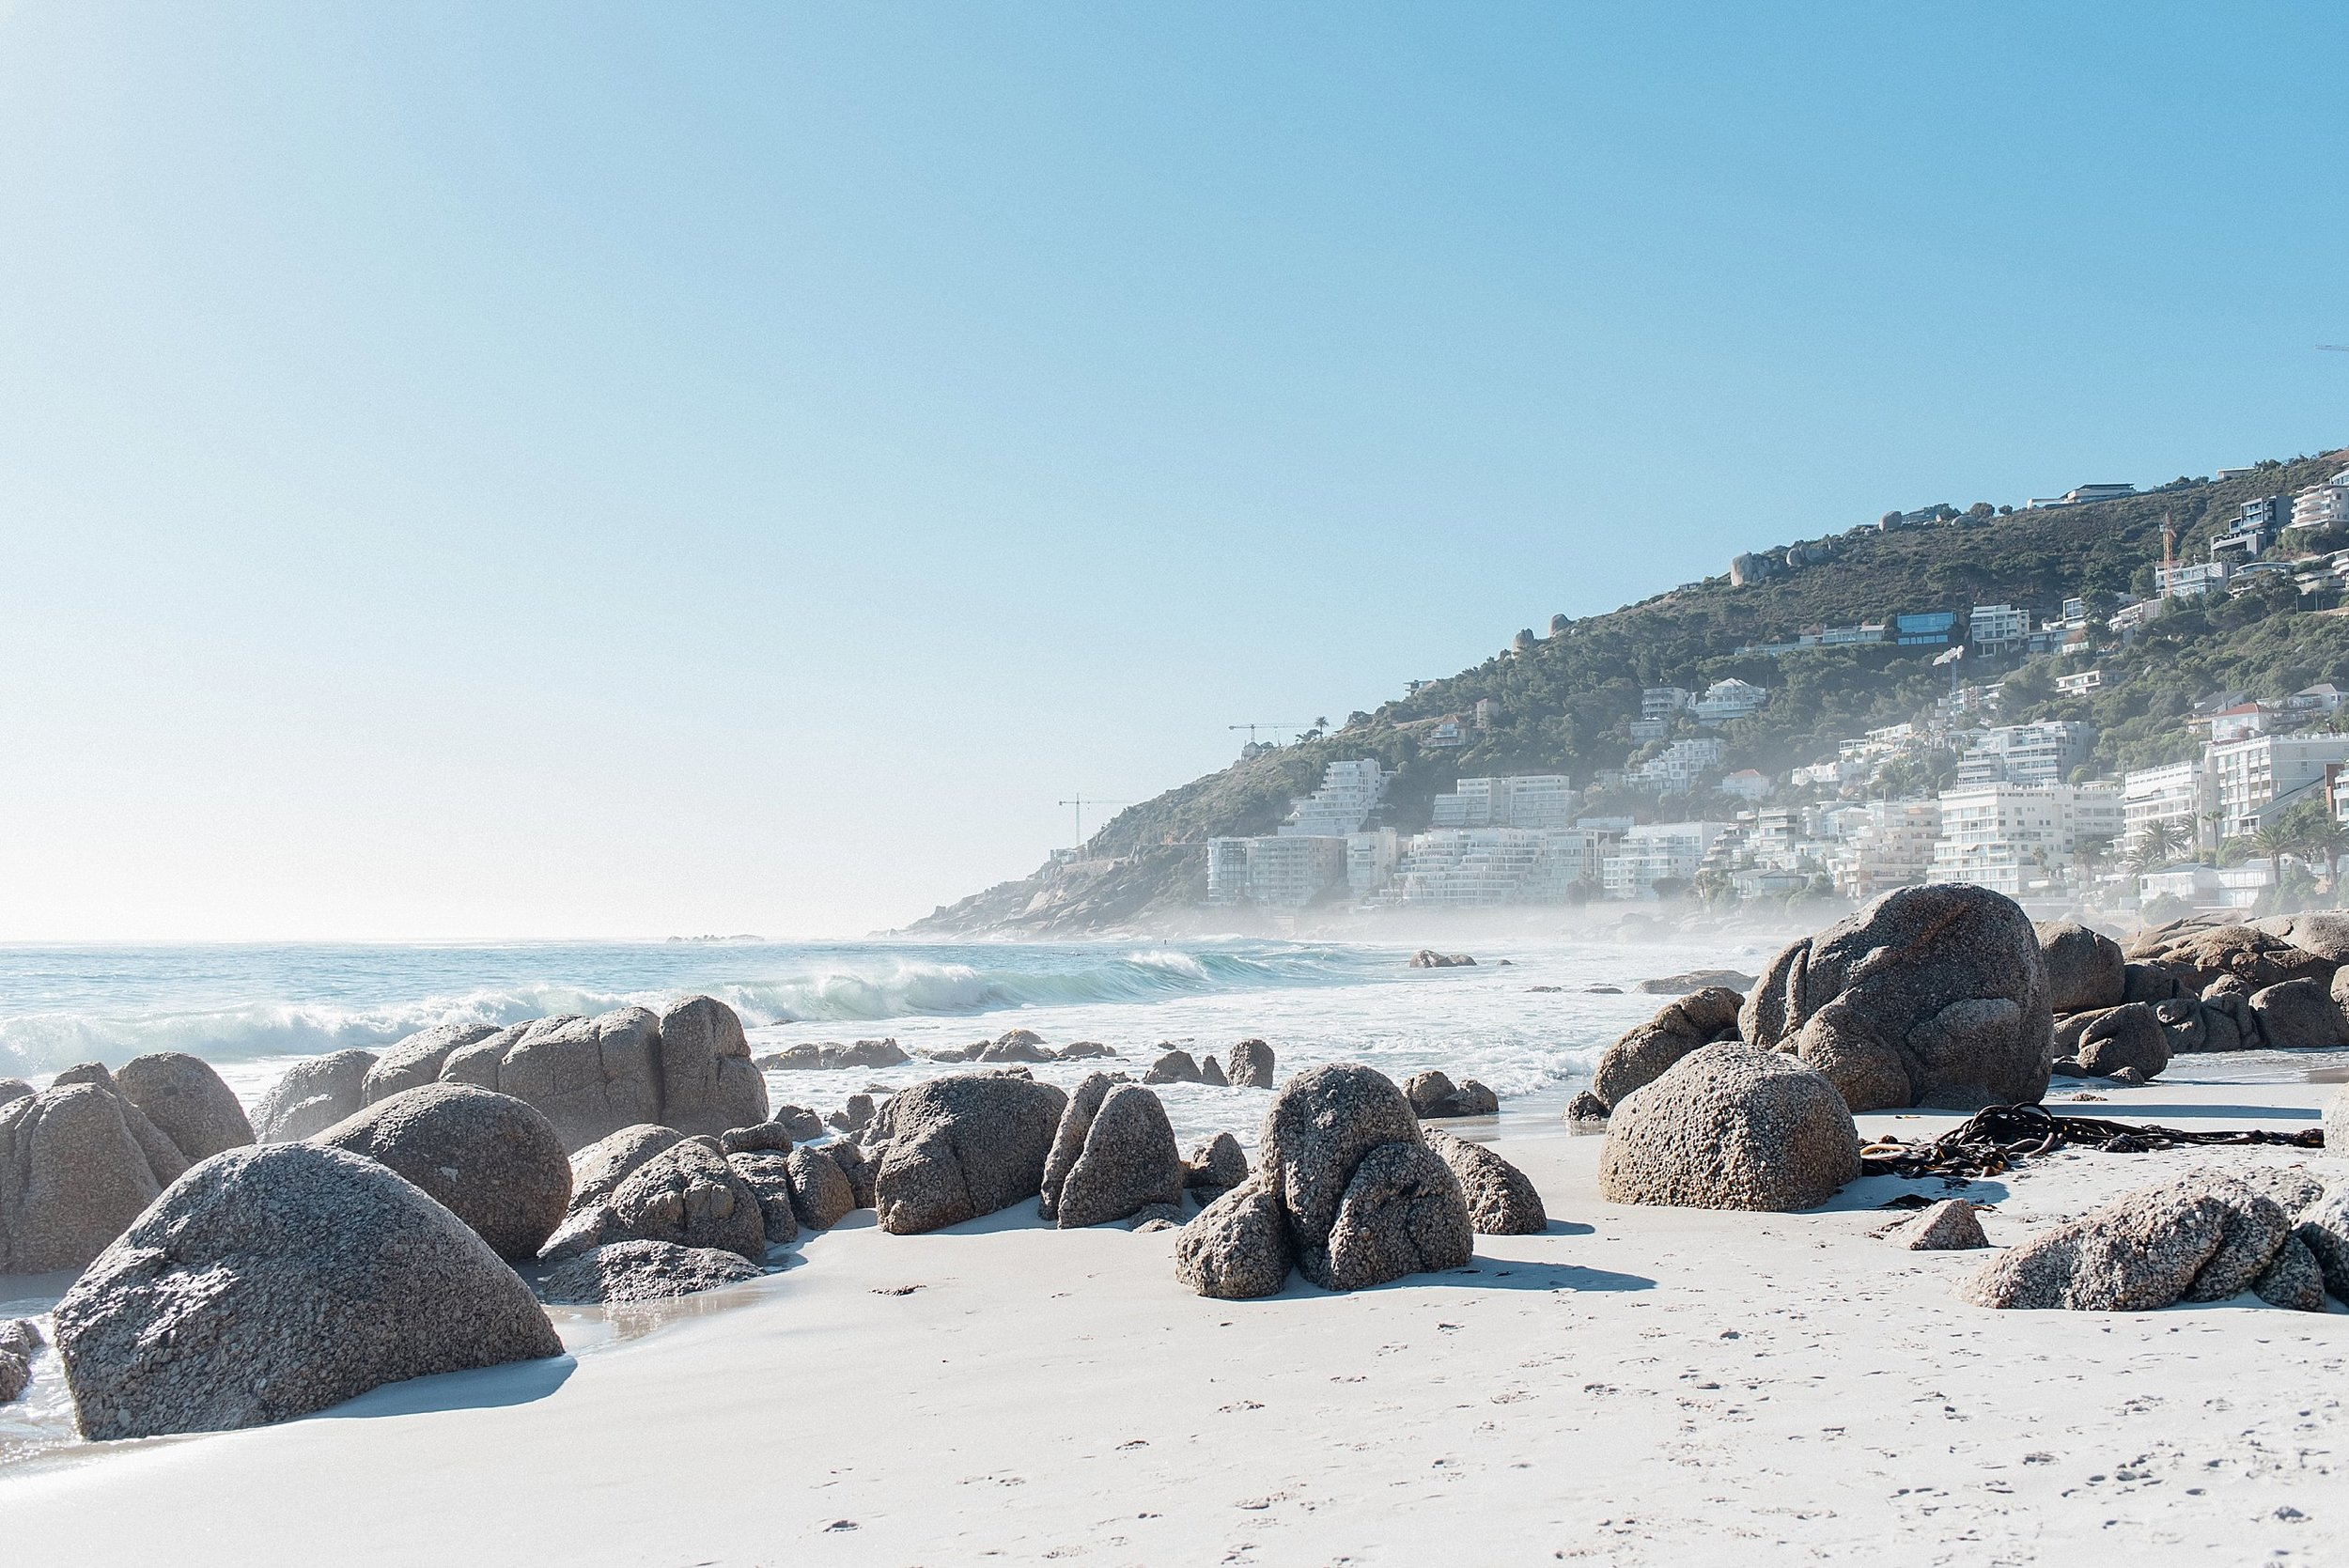 Cape Town, South Africa Travels Day 1 - BLOG - Ali and Batoul Photography-12.jpg